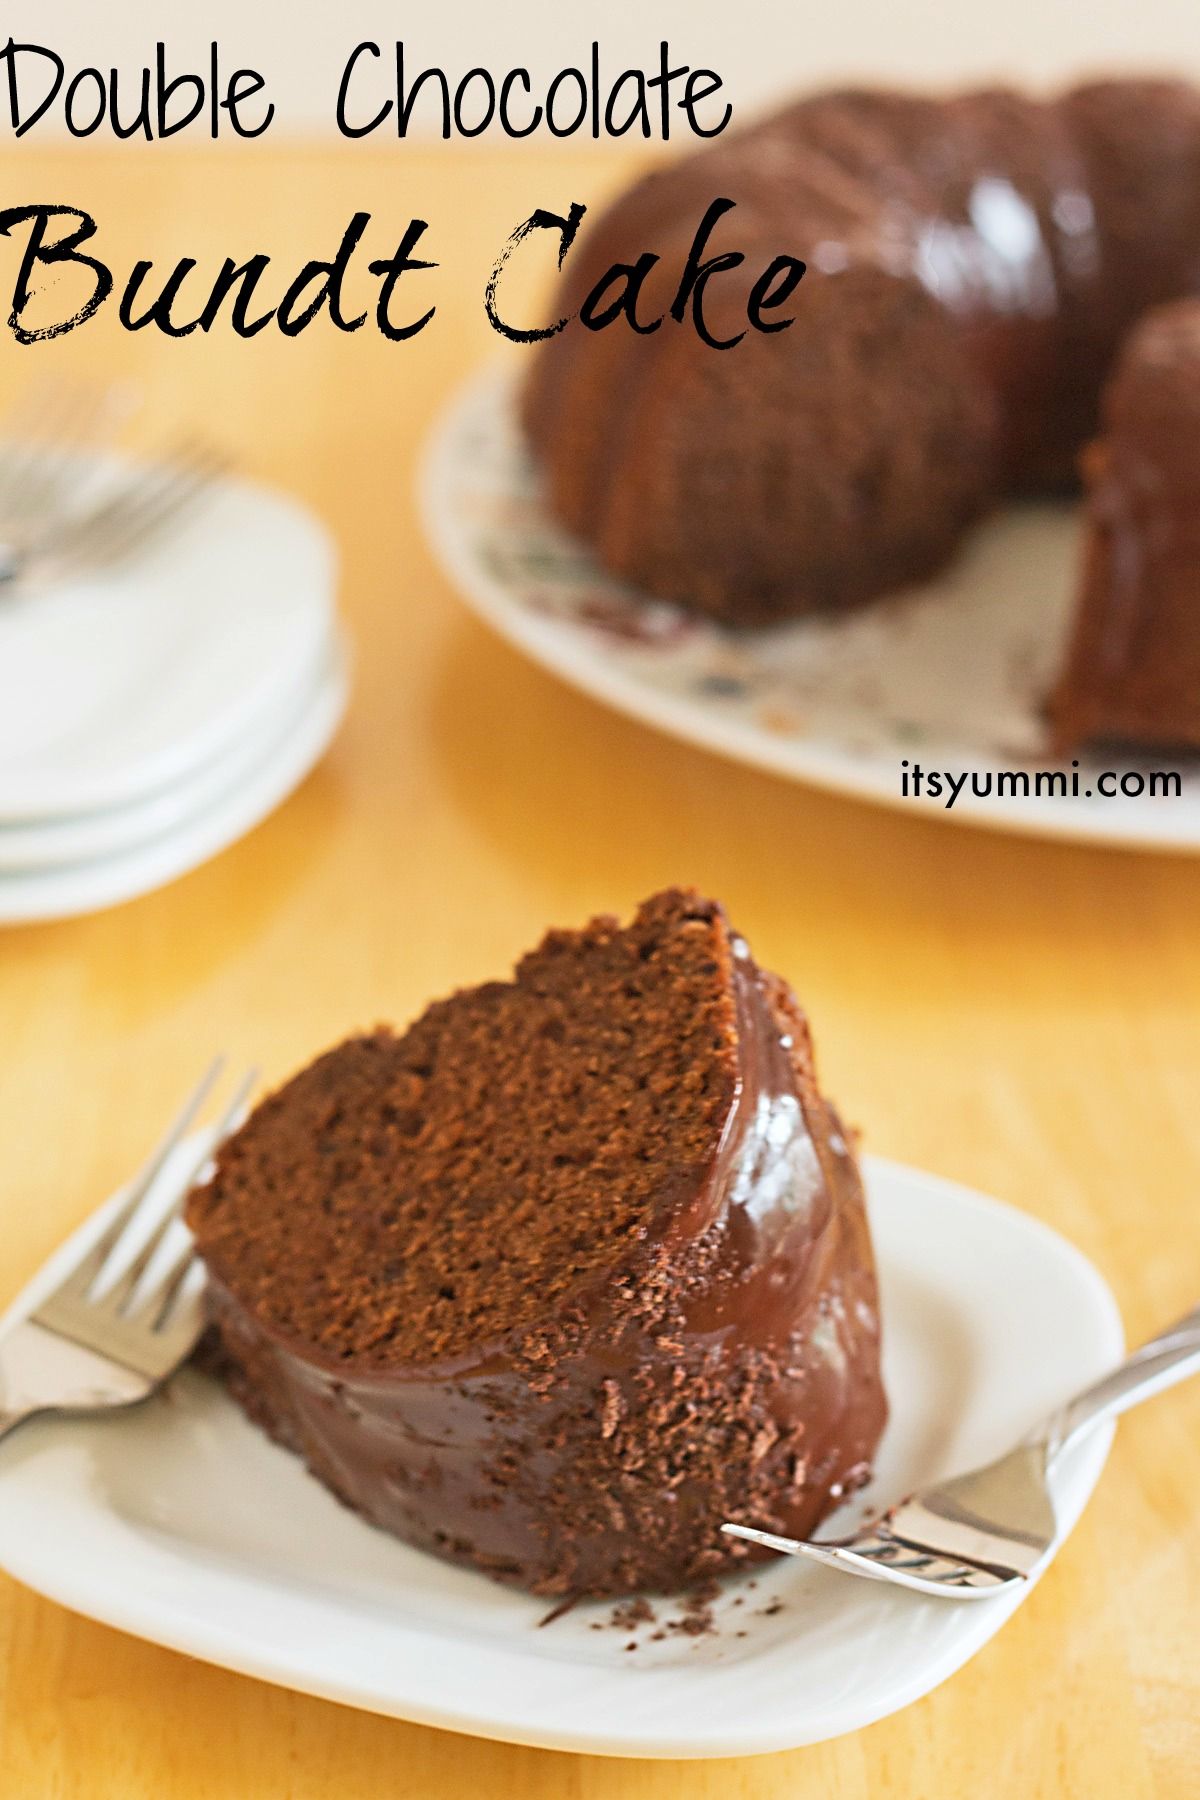 Double Chocolate Bundt Cake from ItsYummi.com